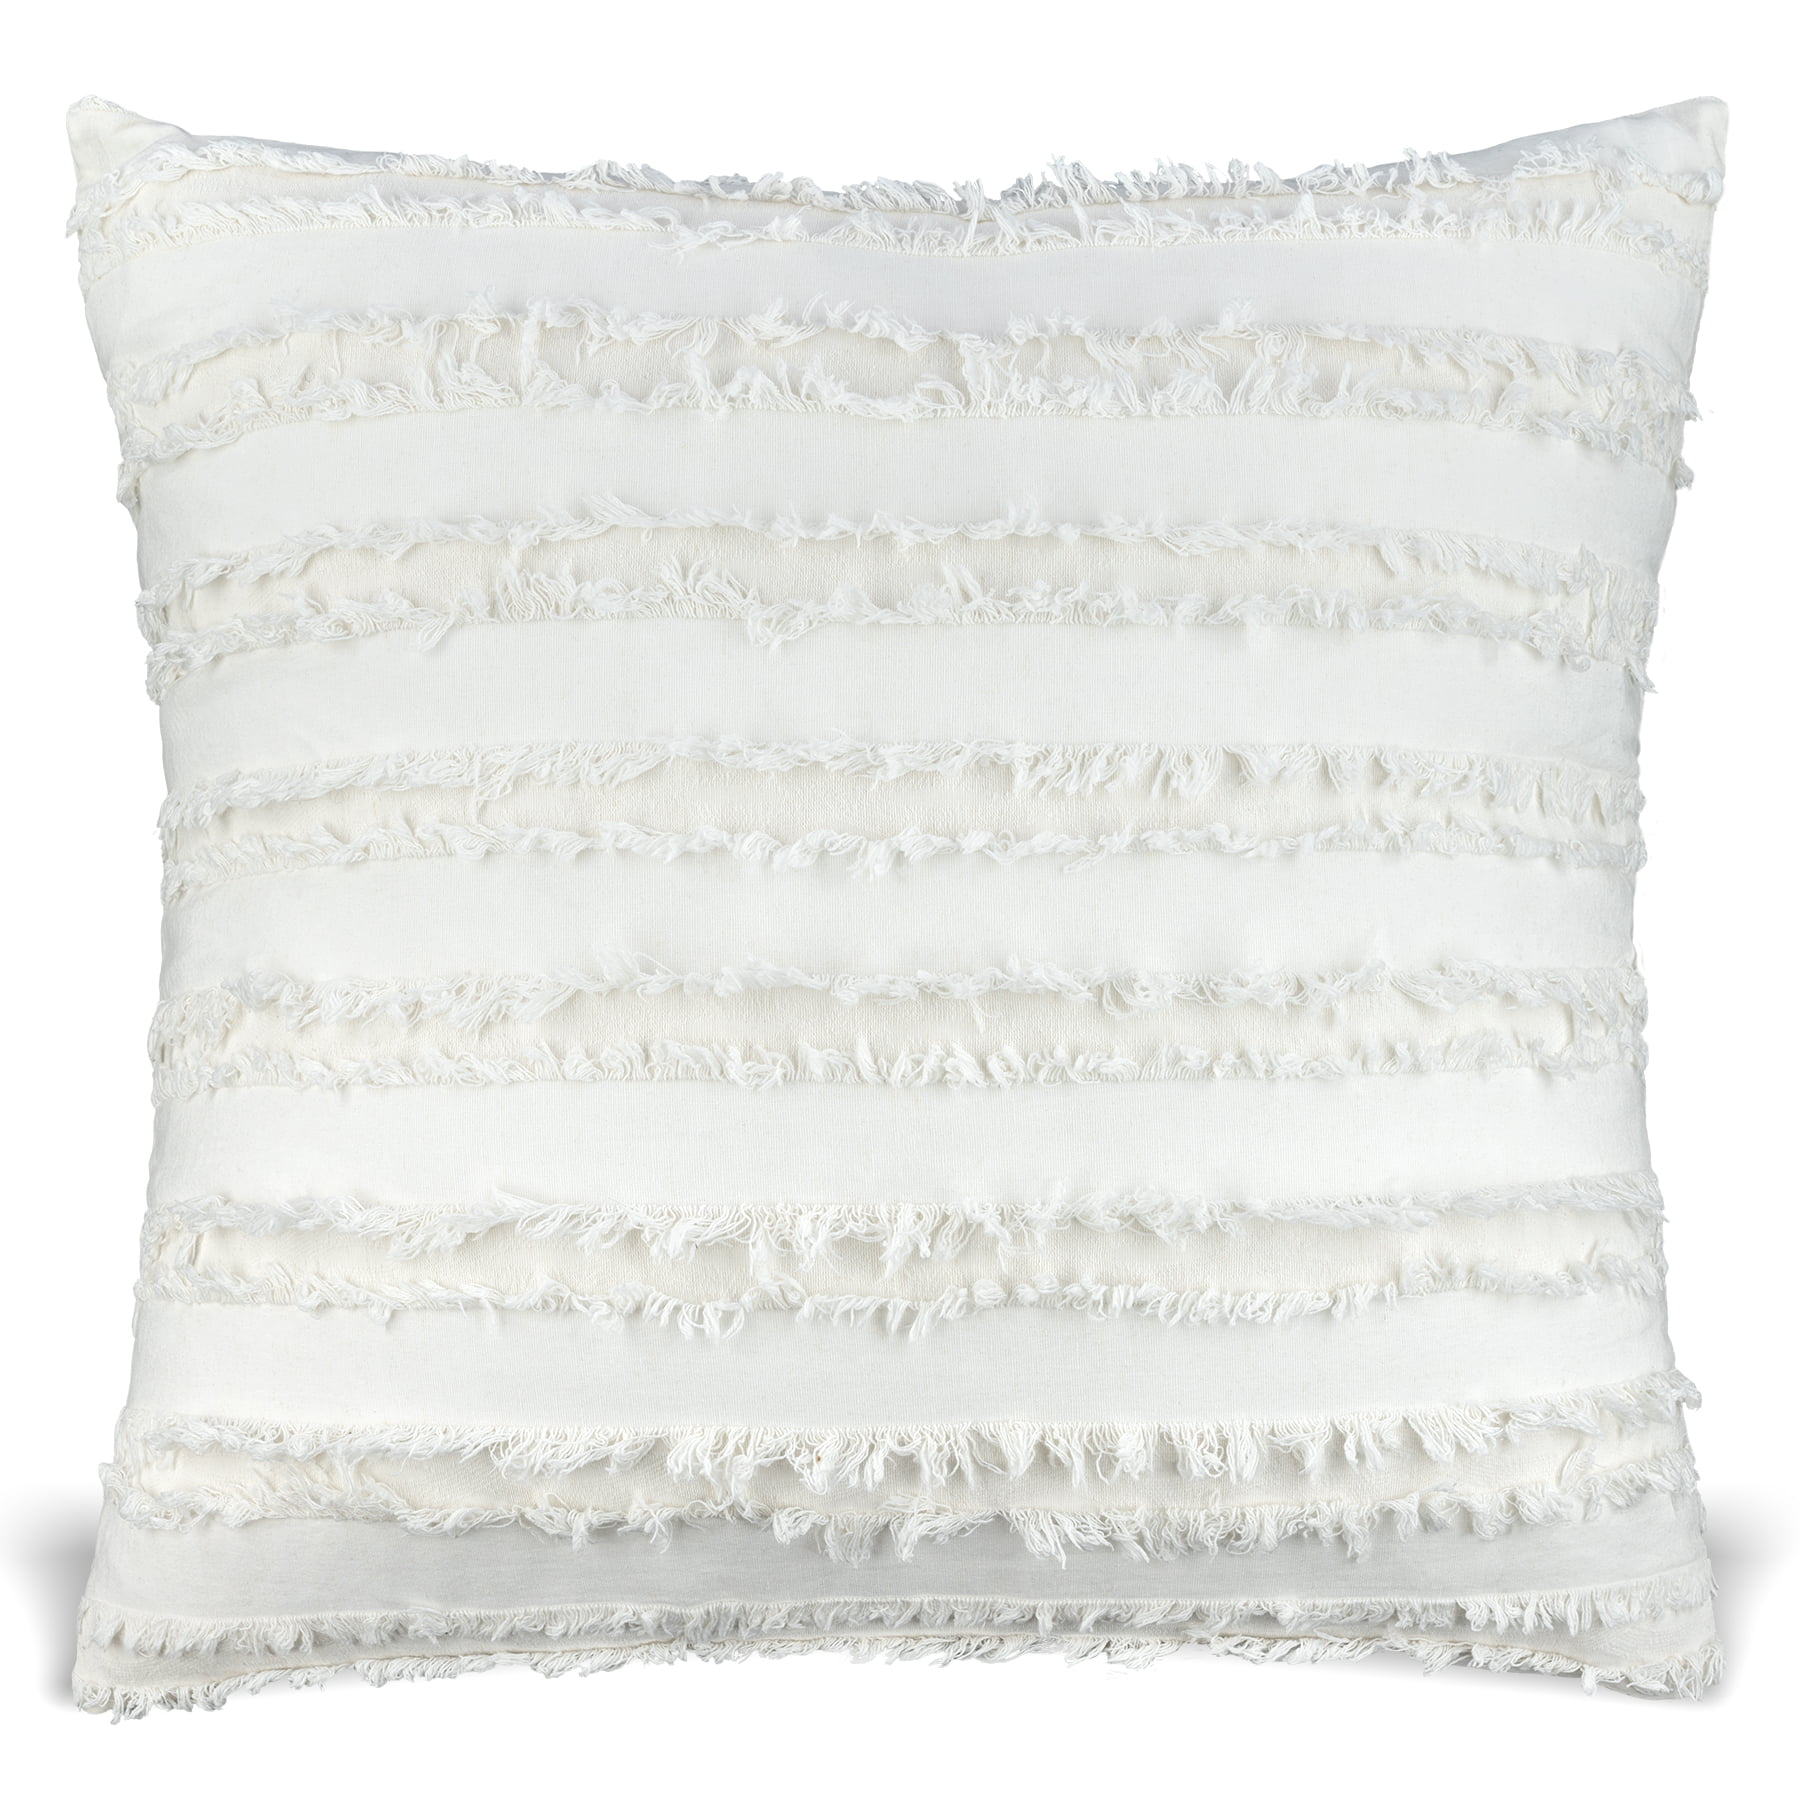 Mauby Home Solid Cotton Washed Frayed Cream Boho 20in Square Pillow Throw Pillow For Bedroom Or Pillows For Couch Cream Walmart Com Walmart Com